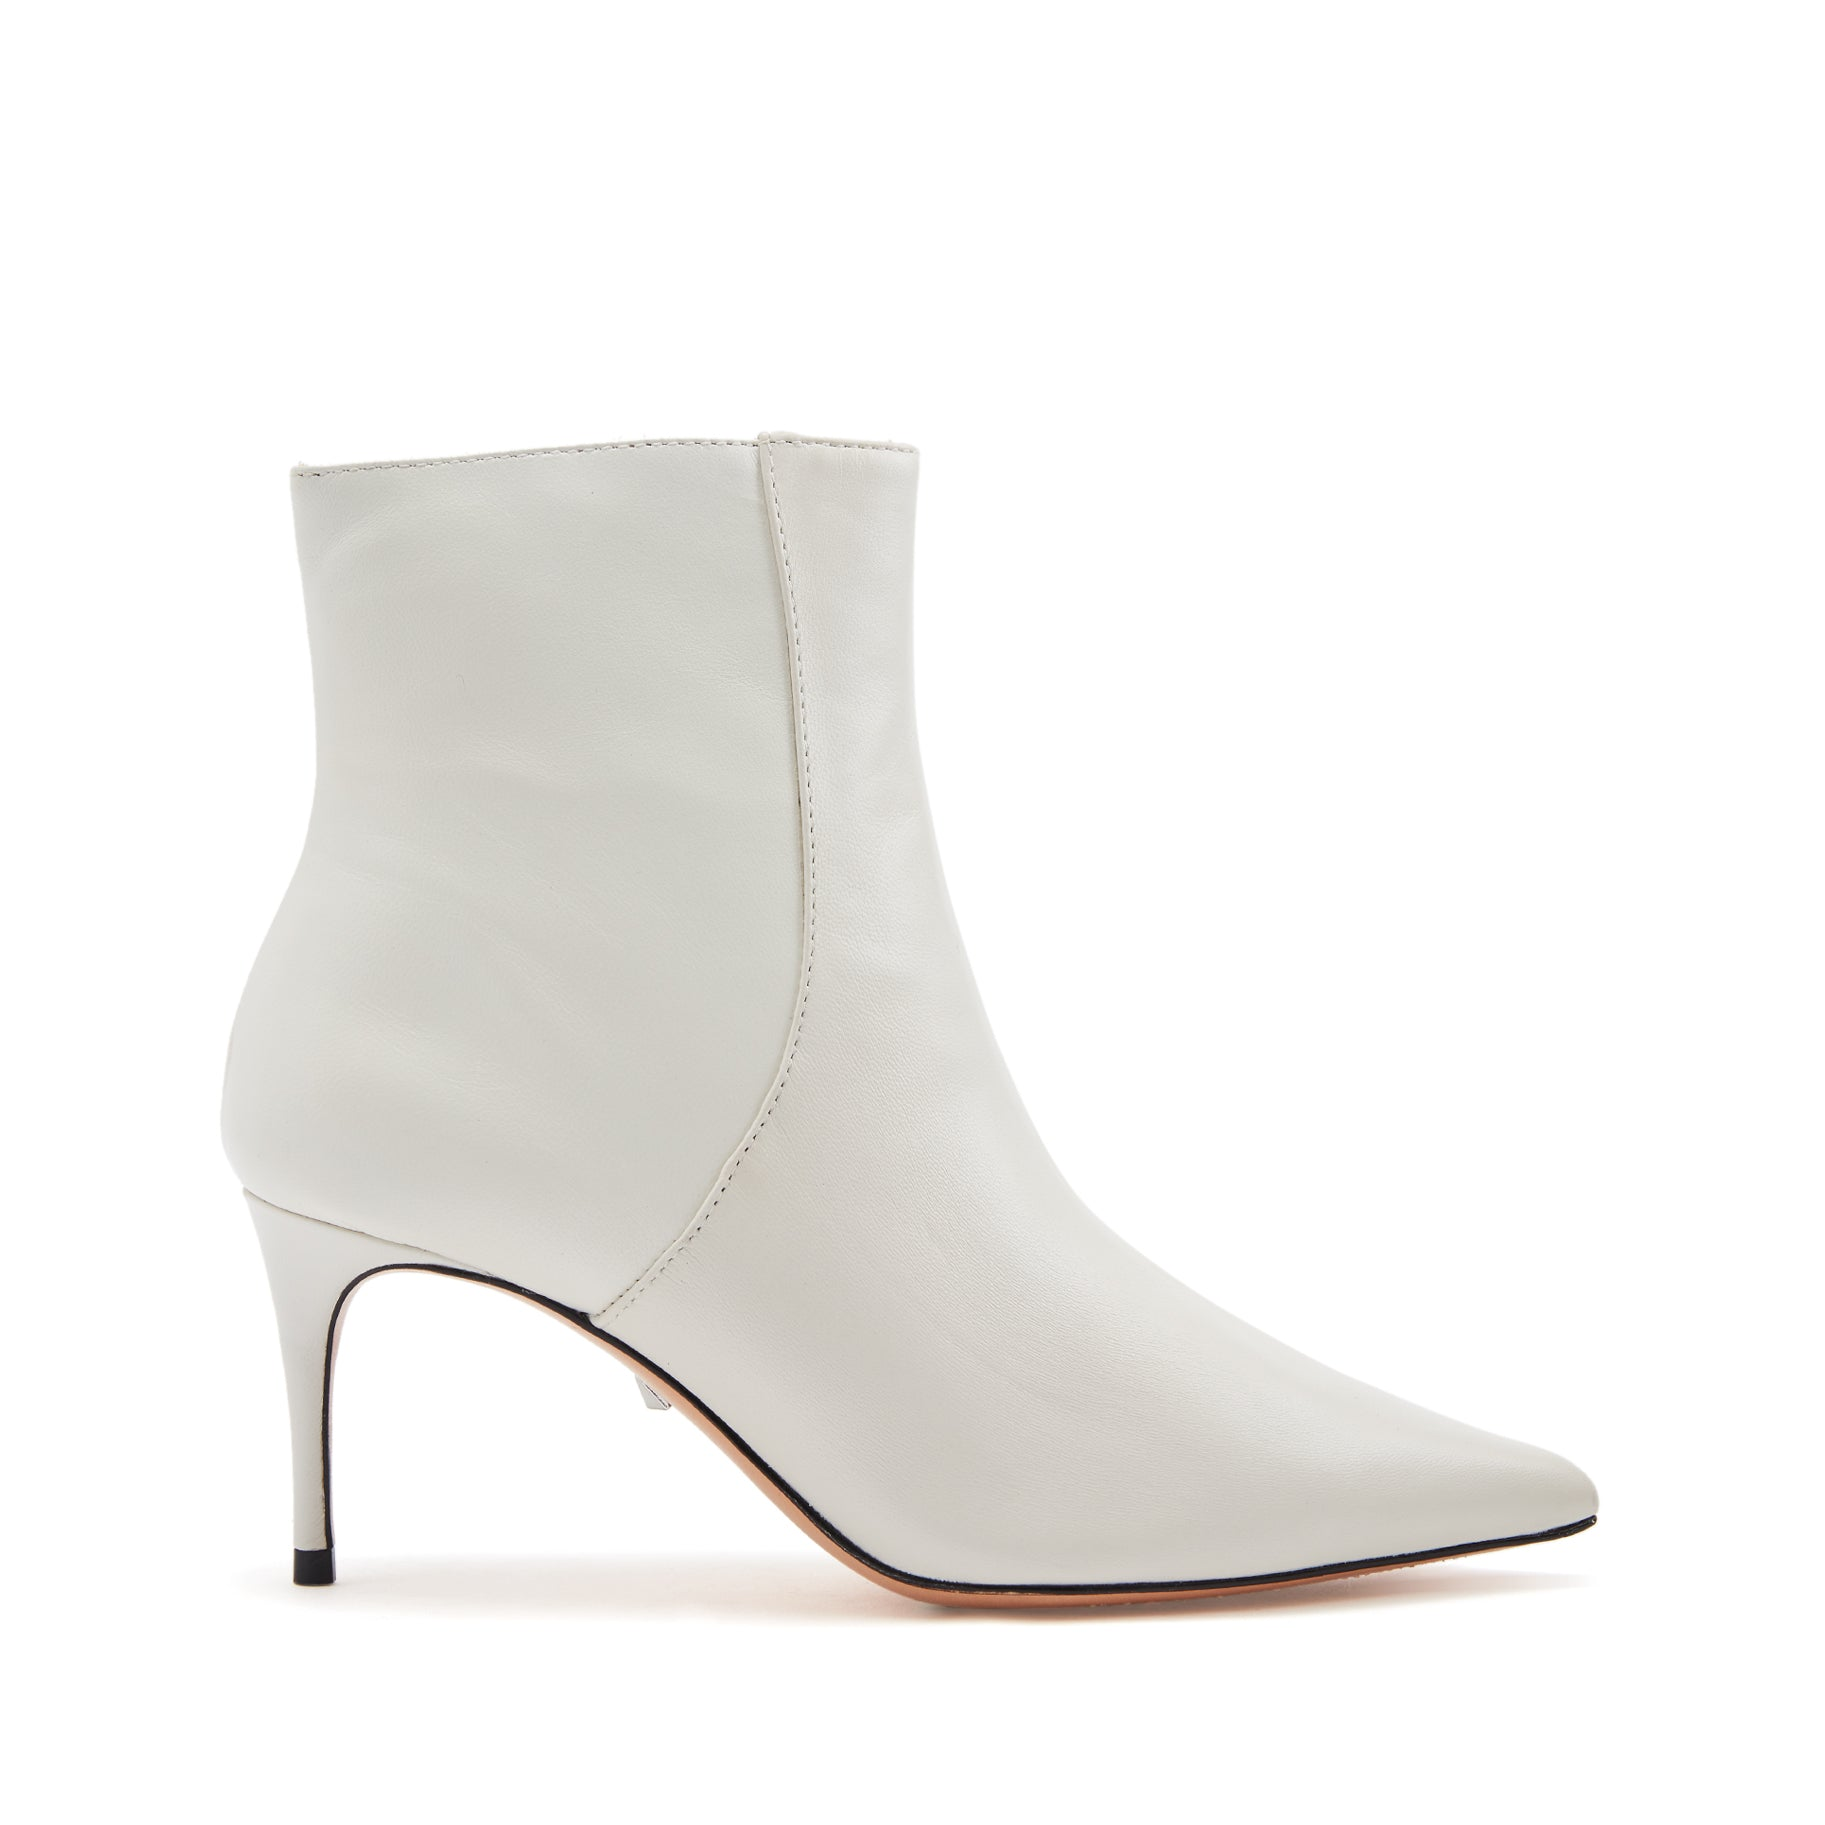 Bette Booties Pearl Leather